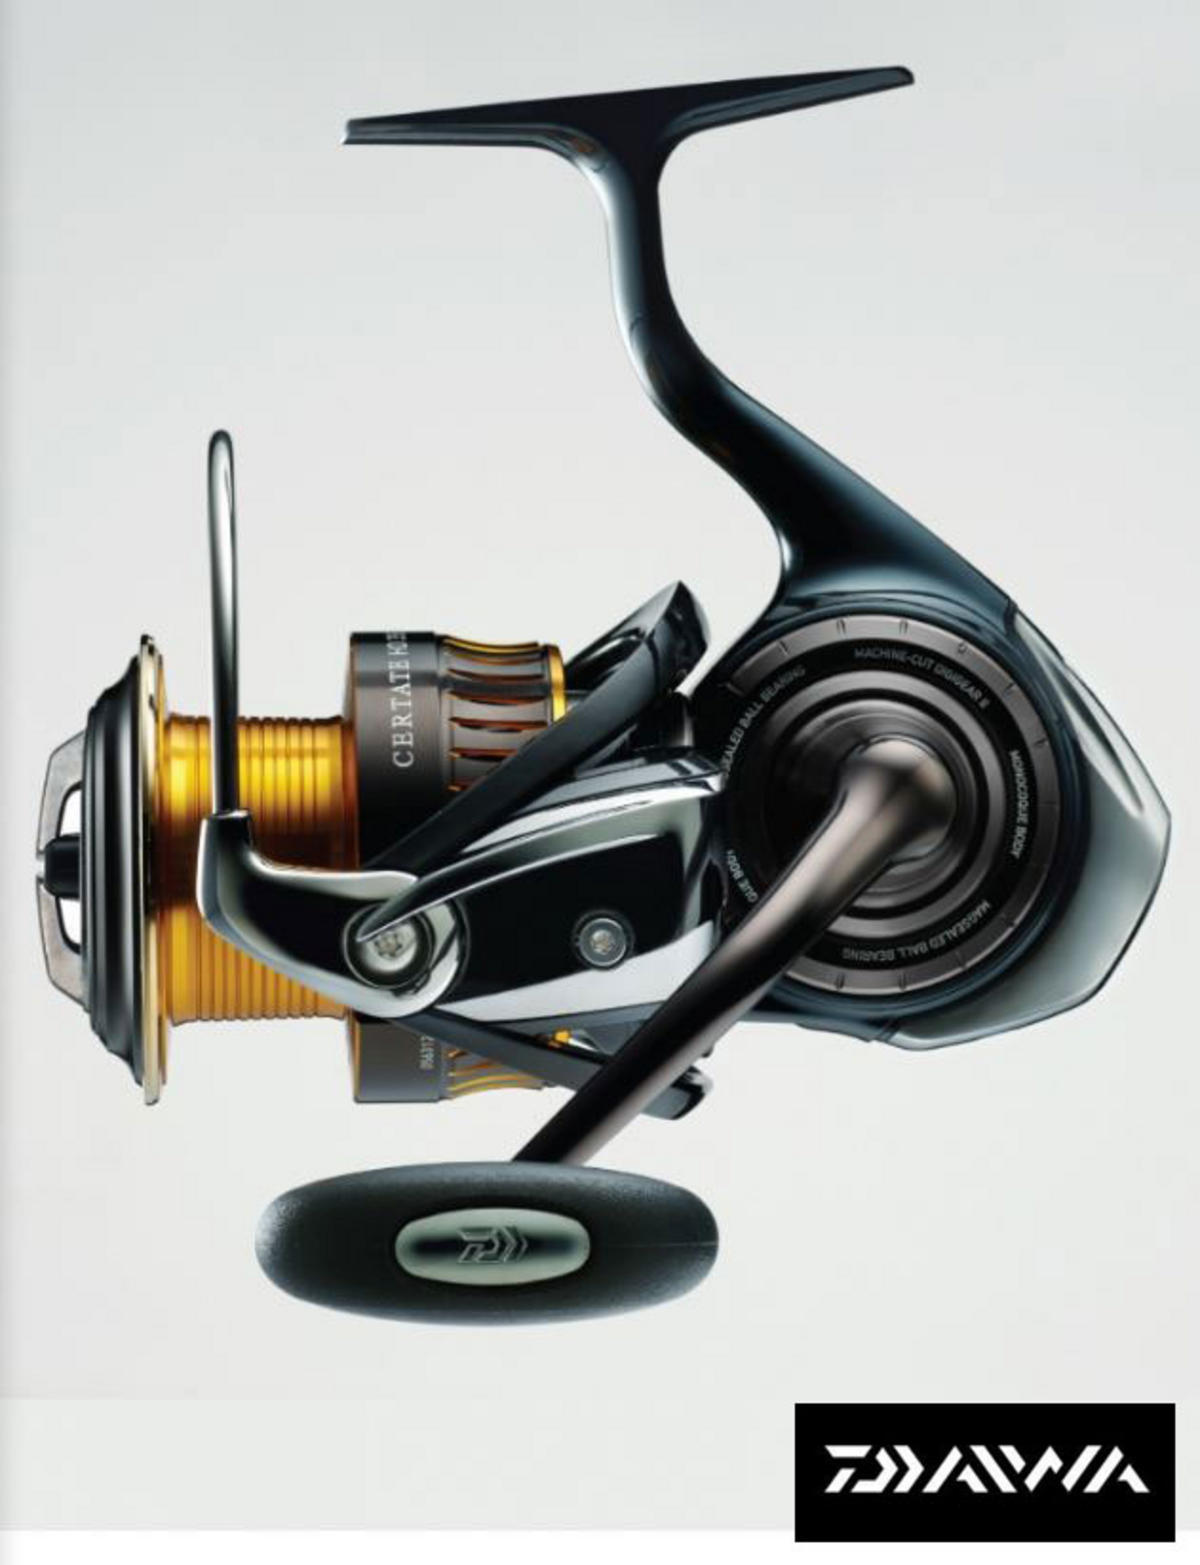 New Daiwa 16 Certate HD 3500SH Spinning Reel Model No. 16Certate HD3500SH